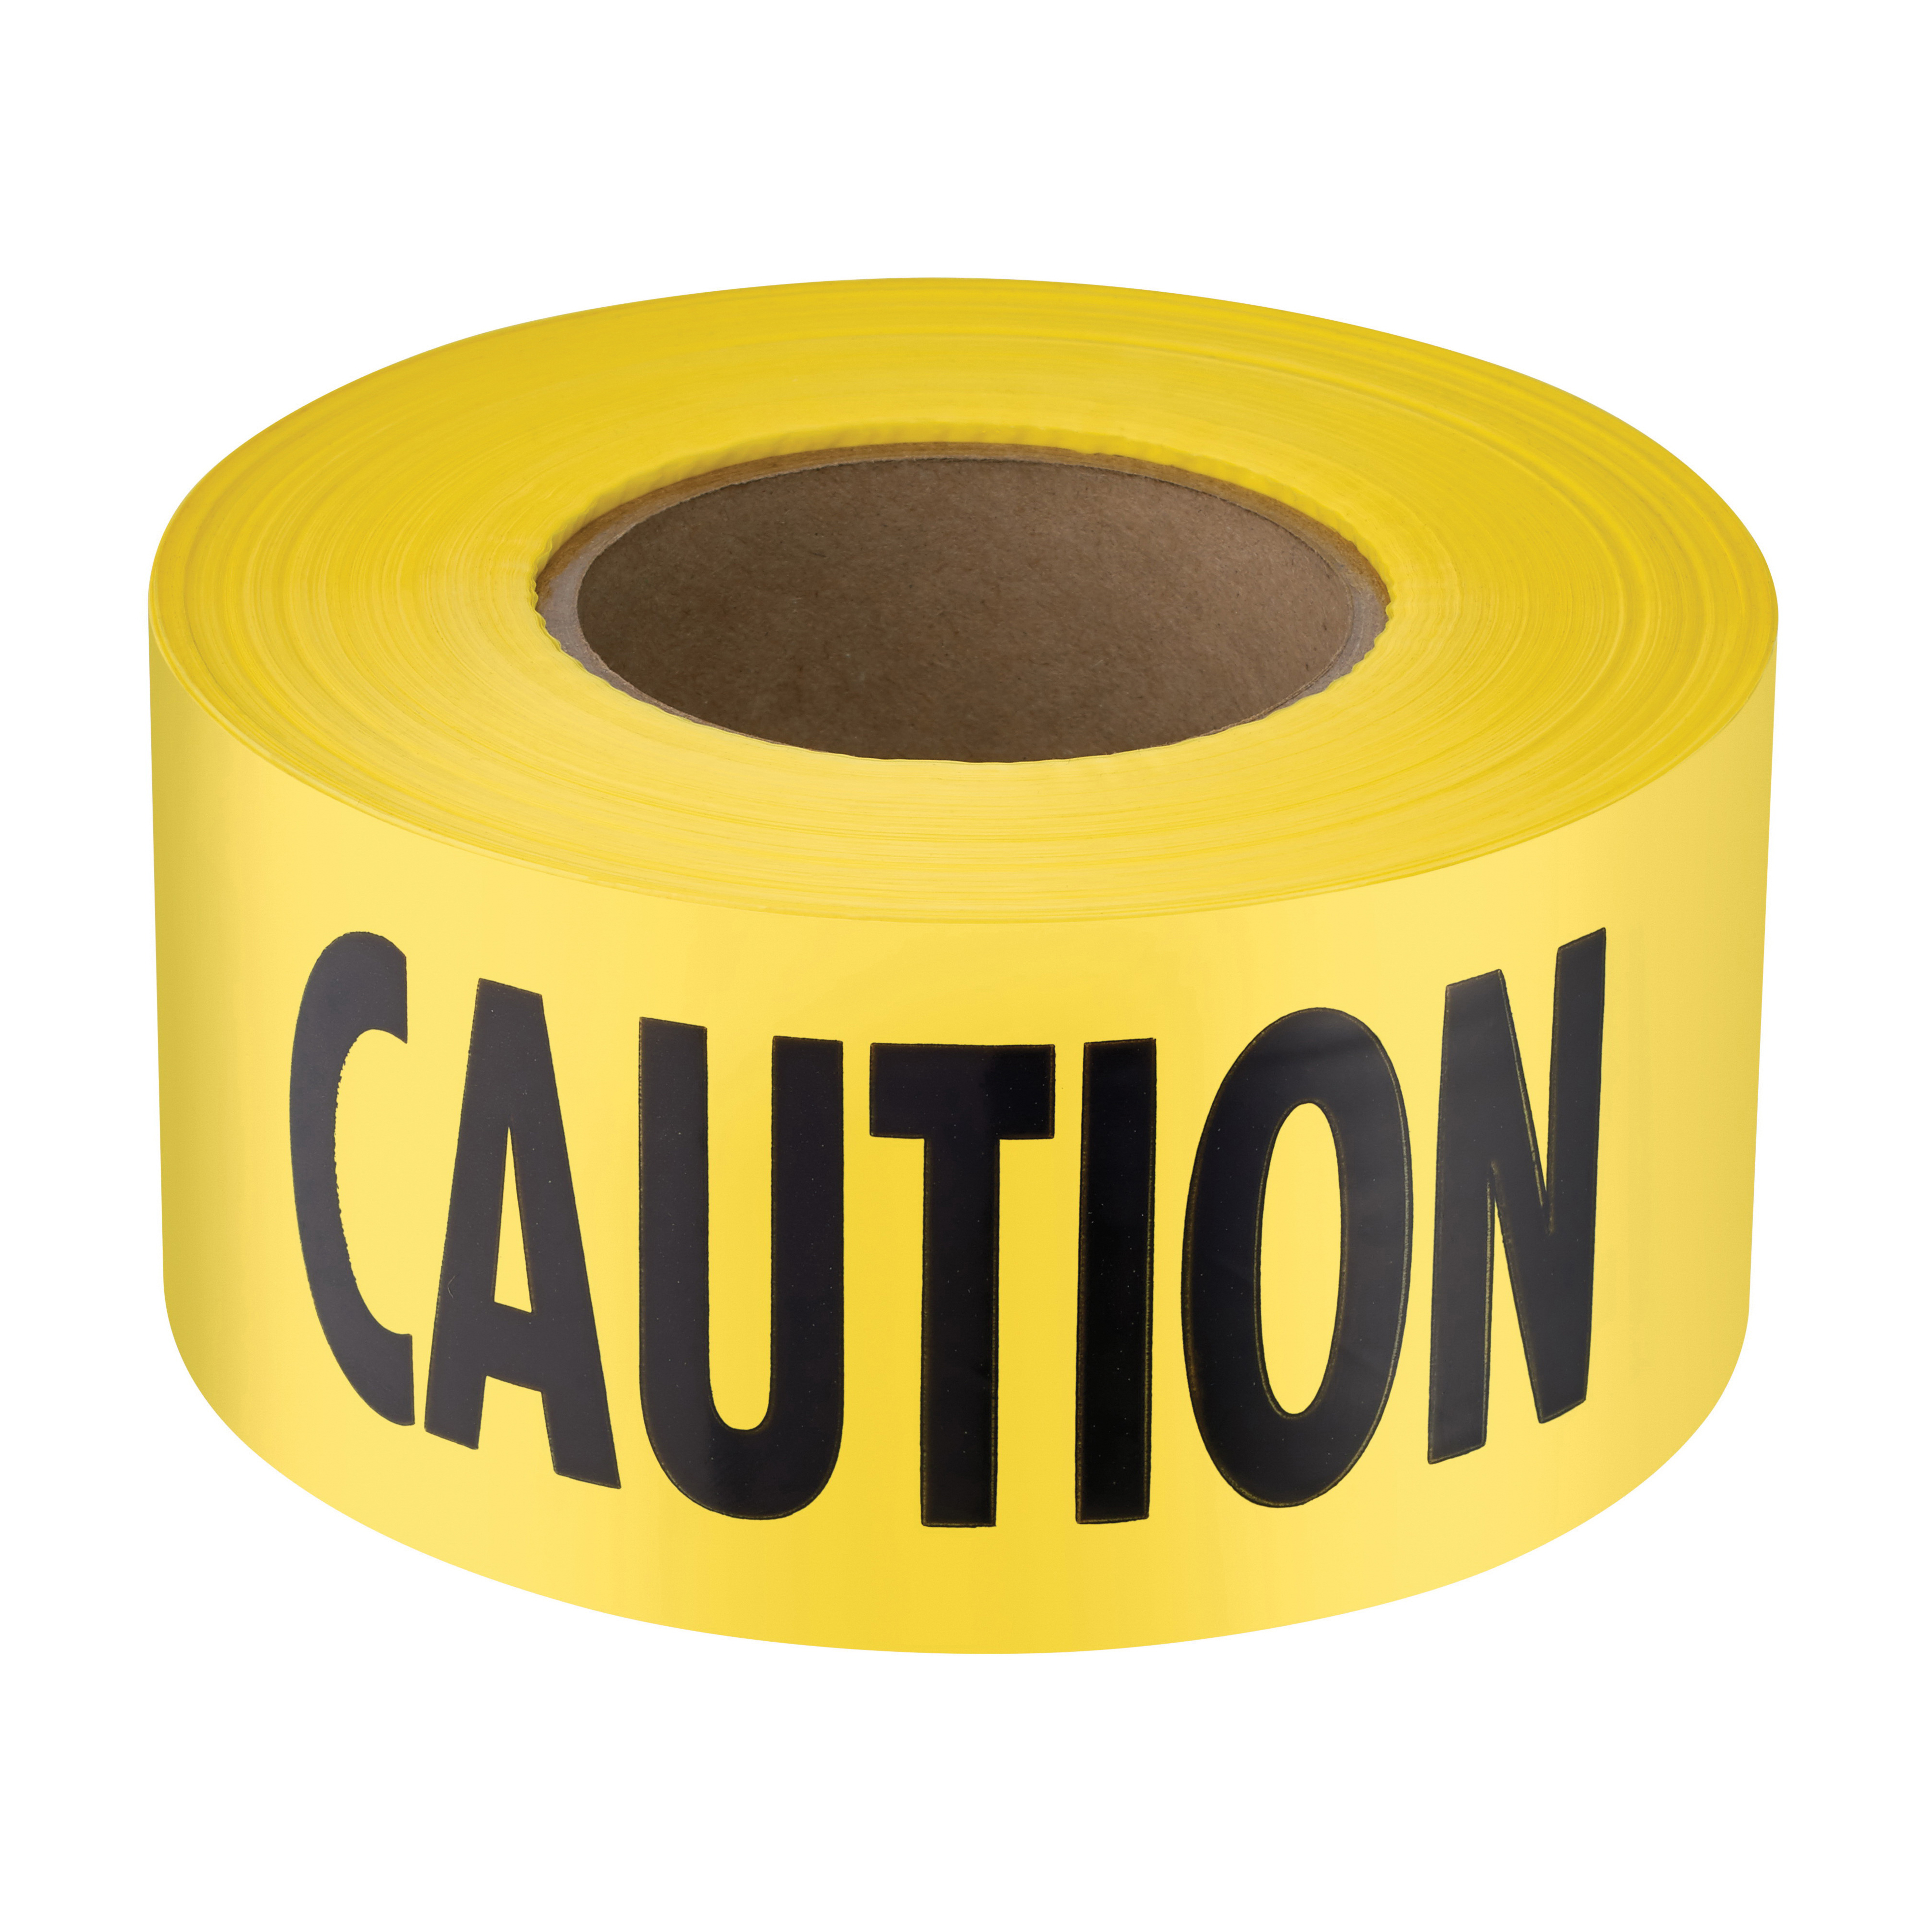 Milwaukee® Empire® 77-1006 Premium Barricade Tape, Yellow, 1000 ft L x 3 in W, Caution Do Not Enter Legend, Plastic